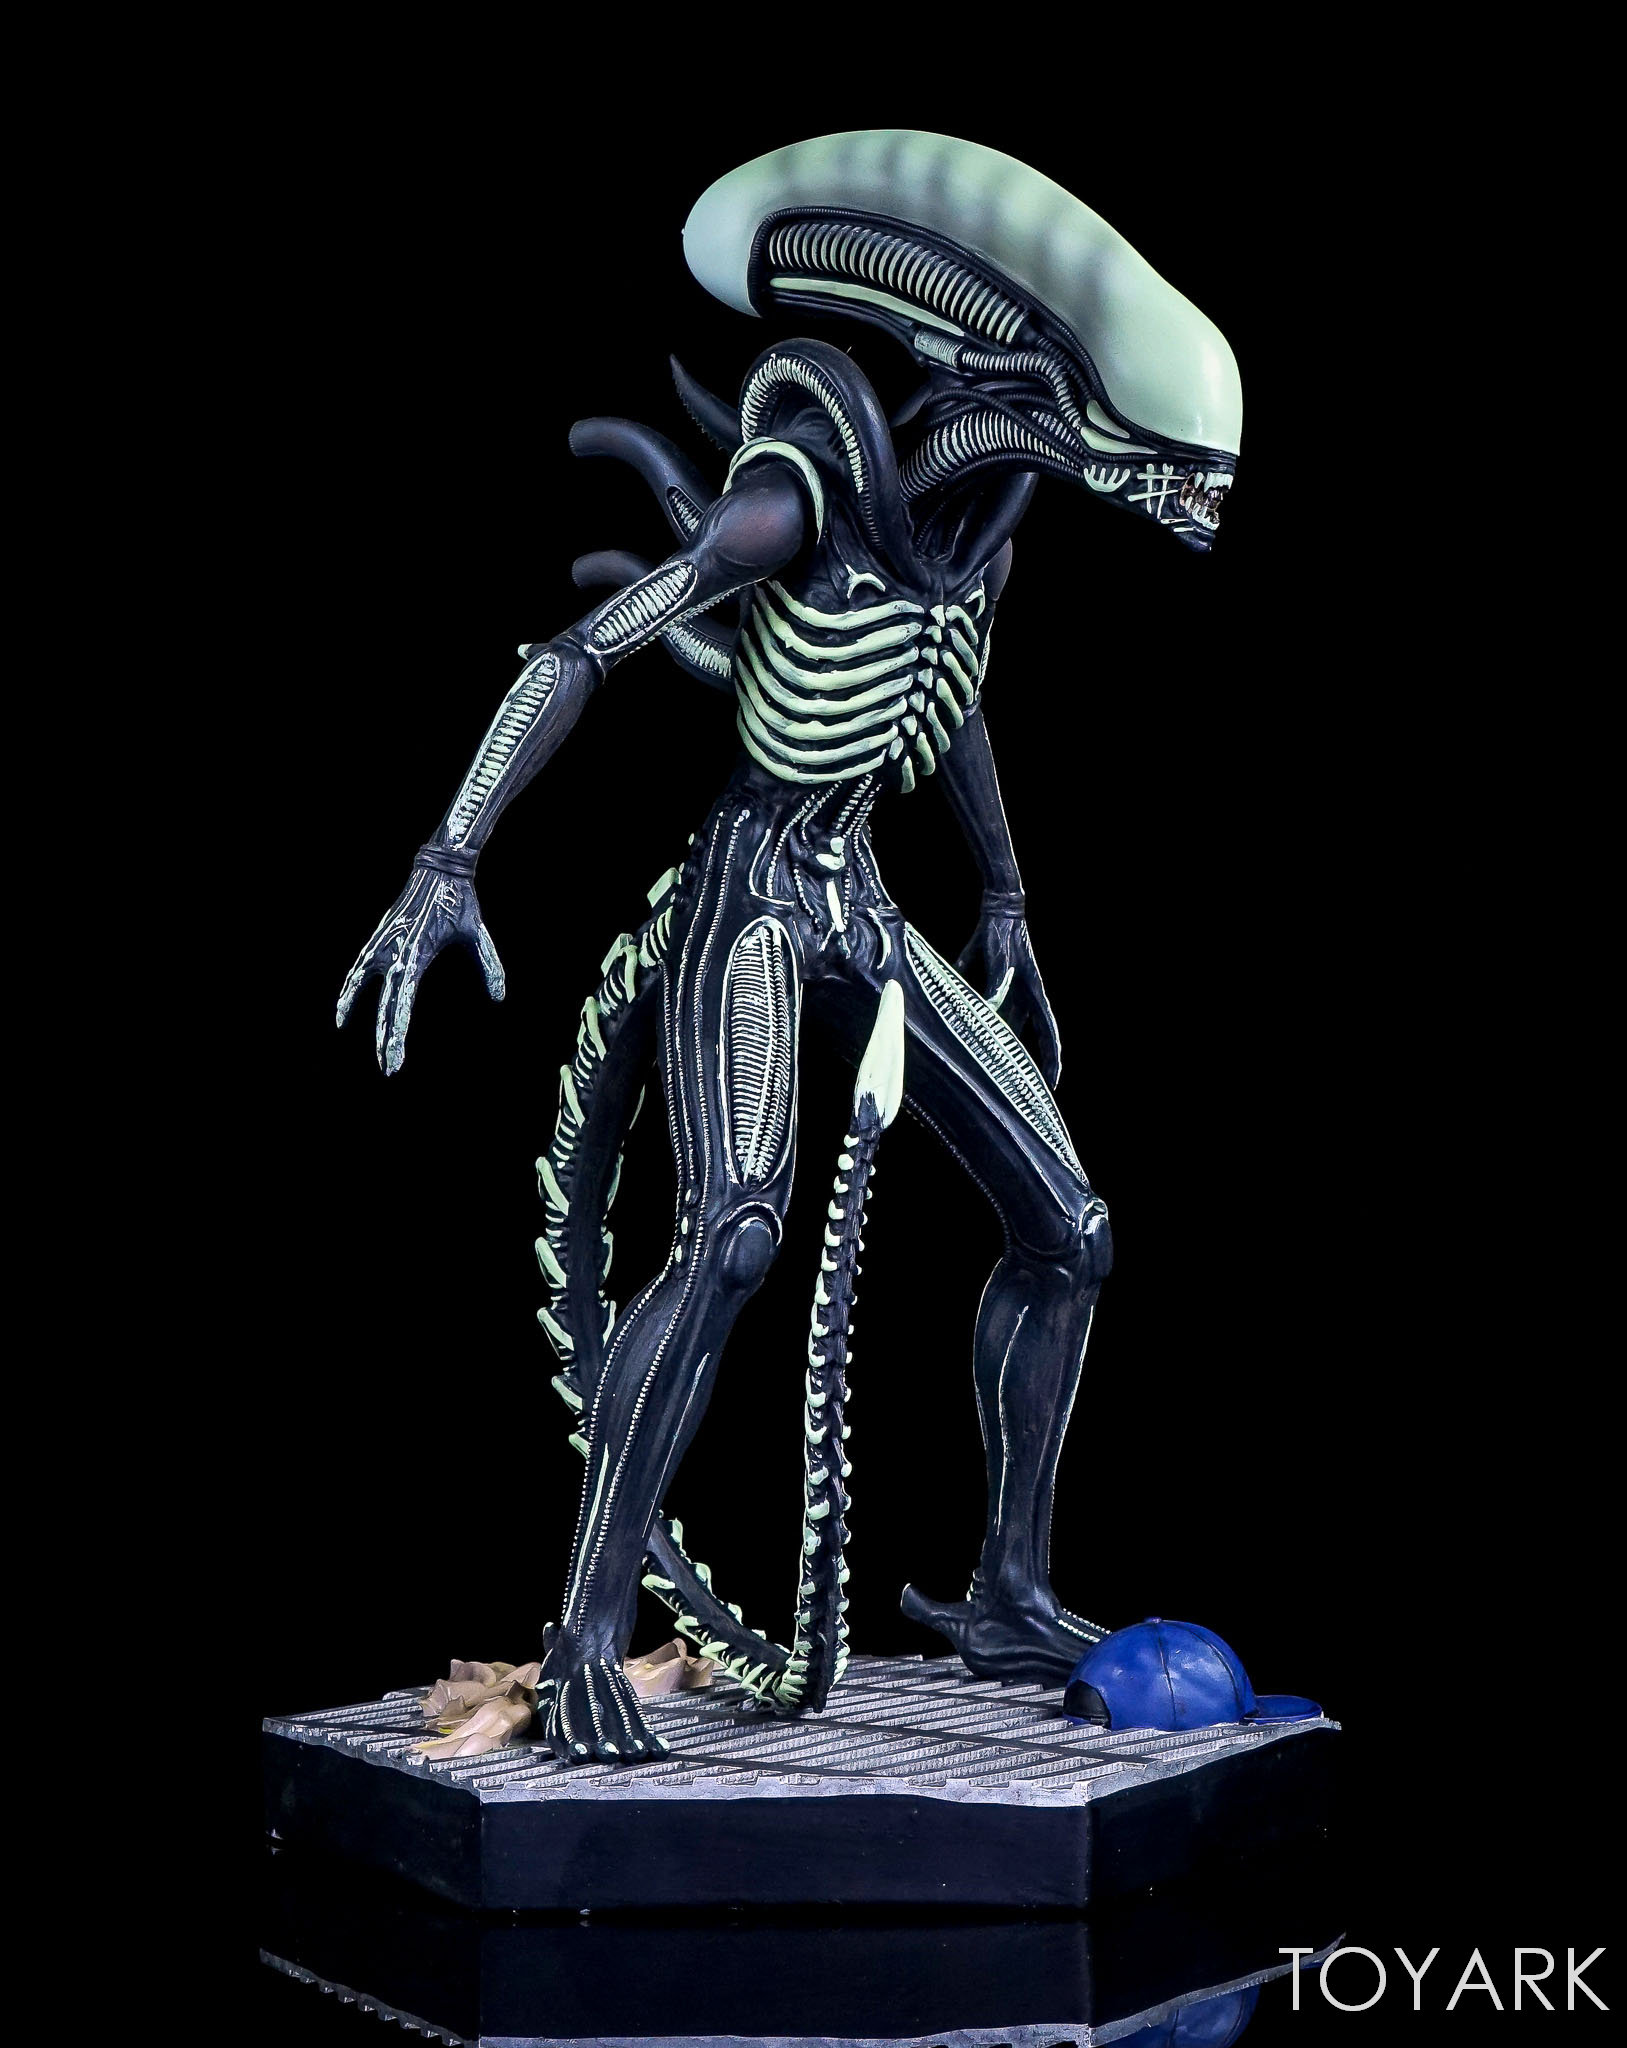 http://news.toyark.com/wp-content/uploads/sites/4/2017/12/Eaglemoss-Glow-in-the-Dark-Alien-Statue-005.jpg